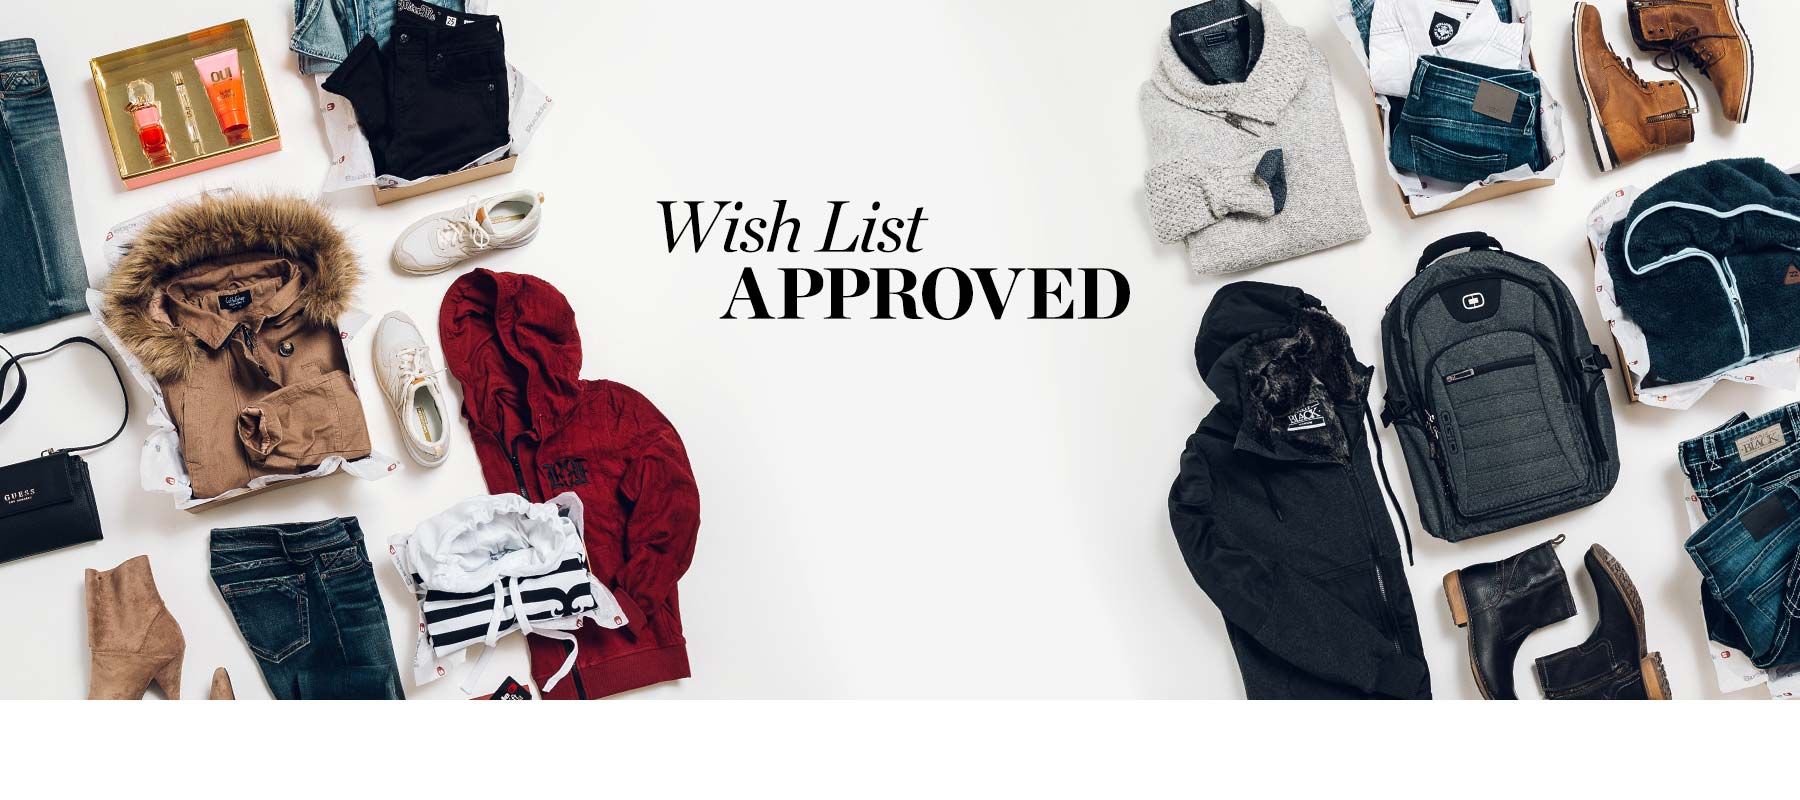 Wish List Approved - Men's and Women's Buckle clothing and accessories laid out